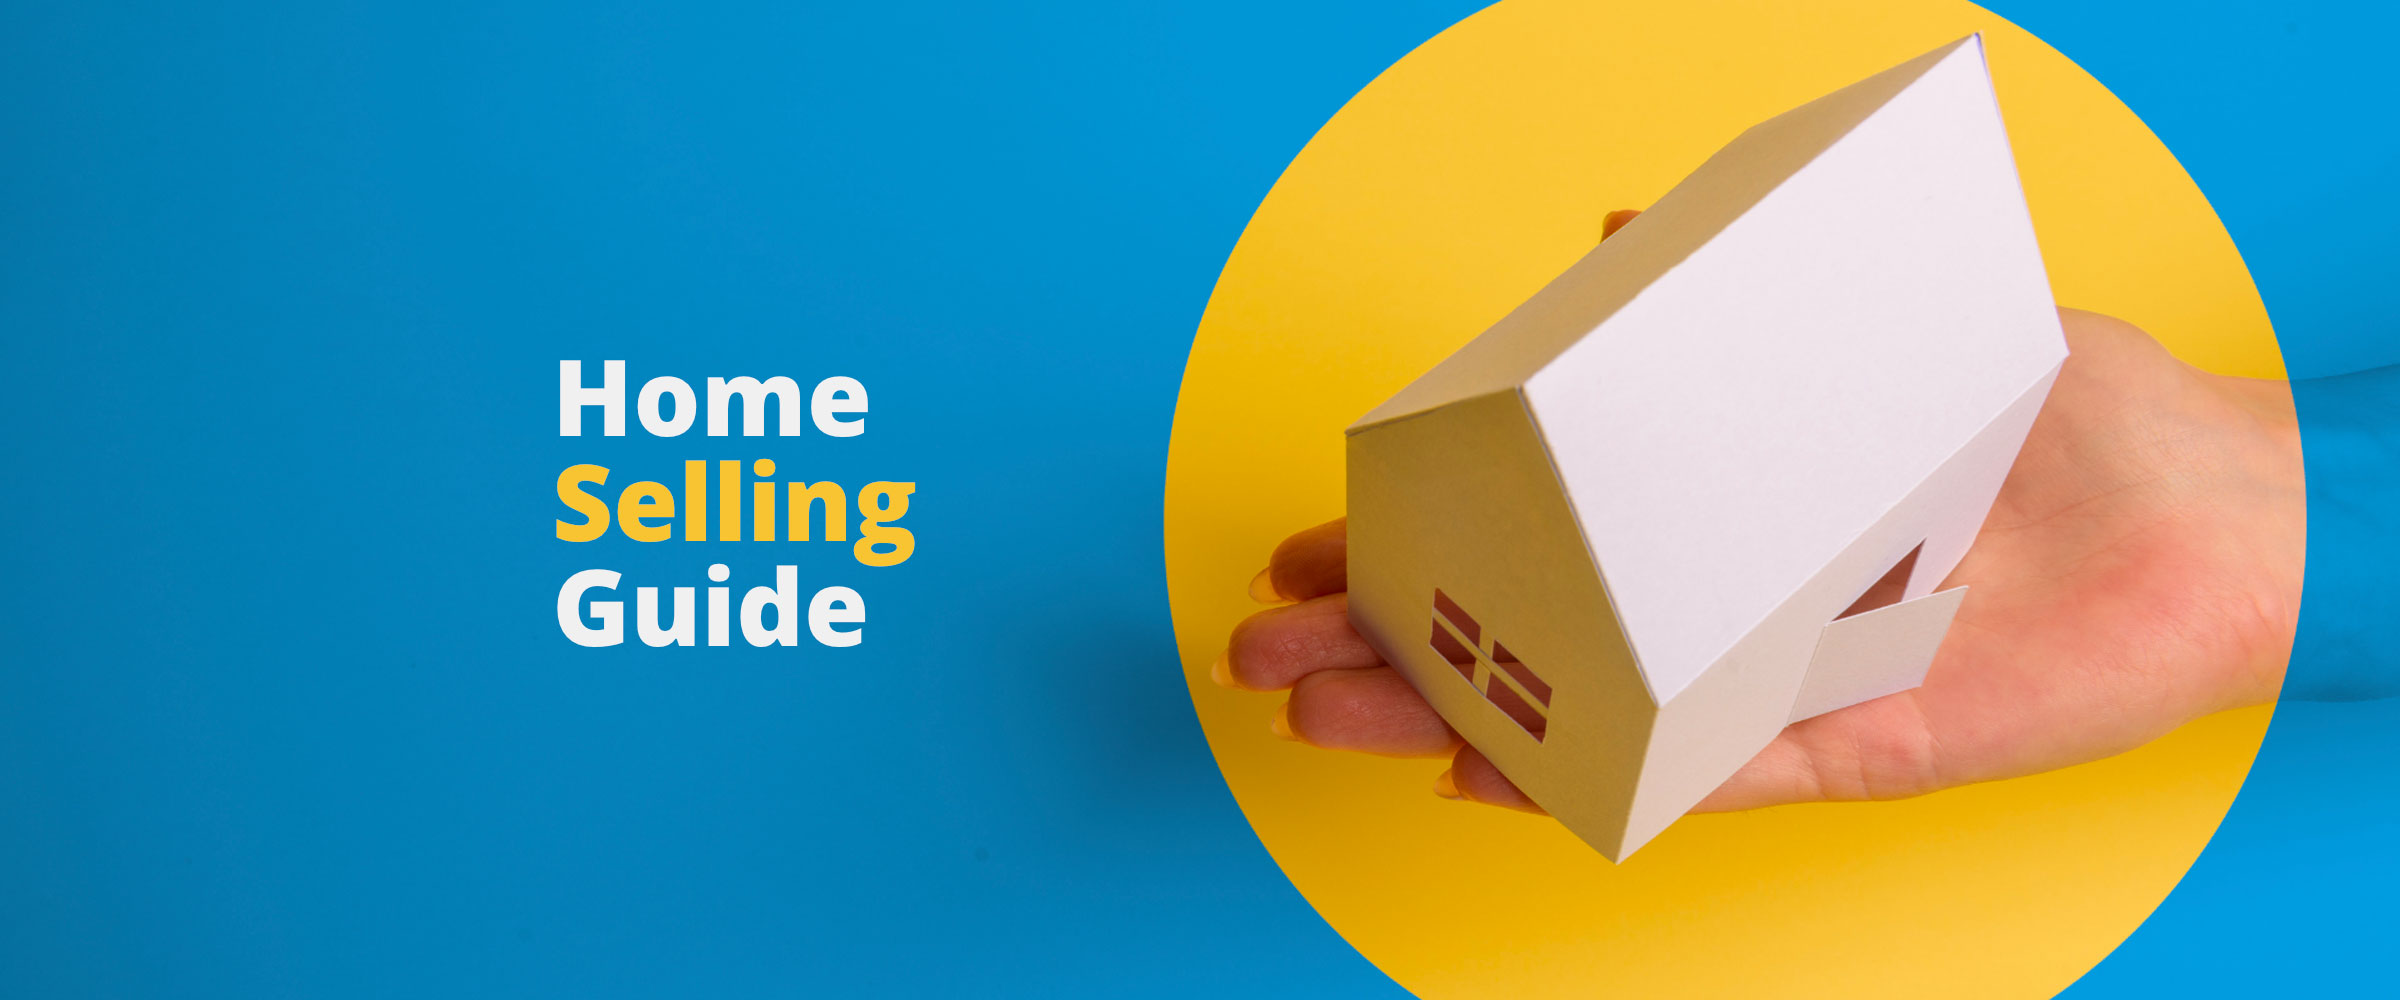 image of how to sell your house